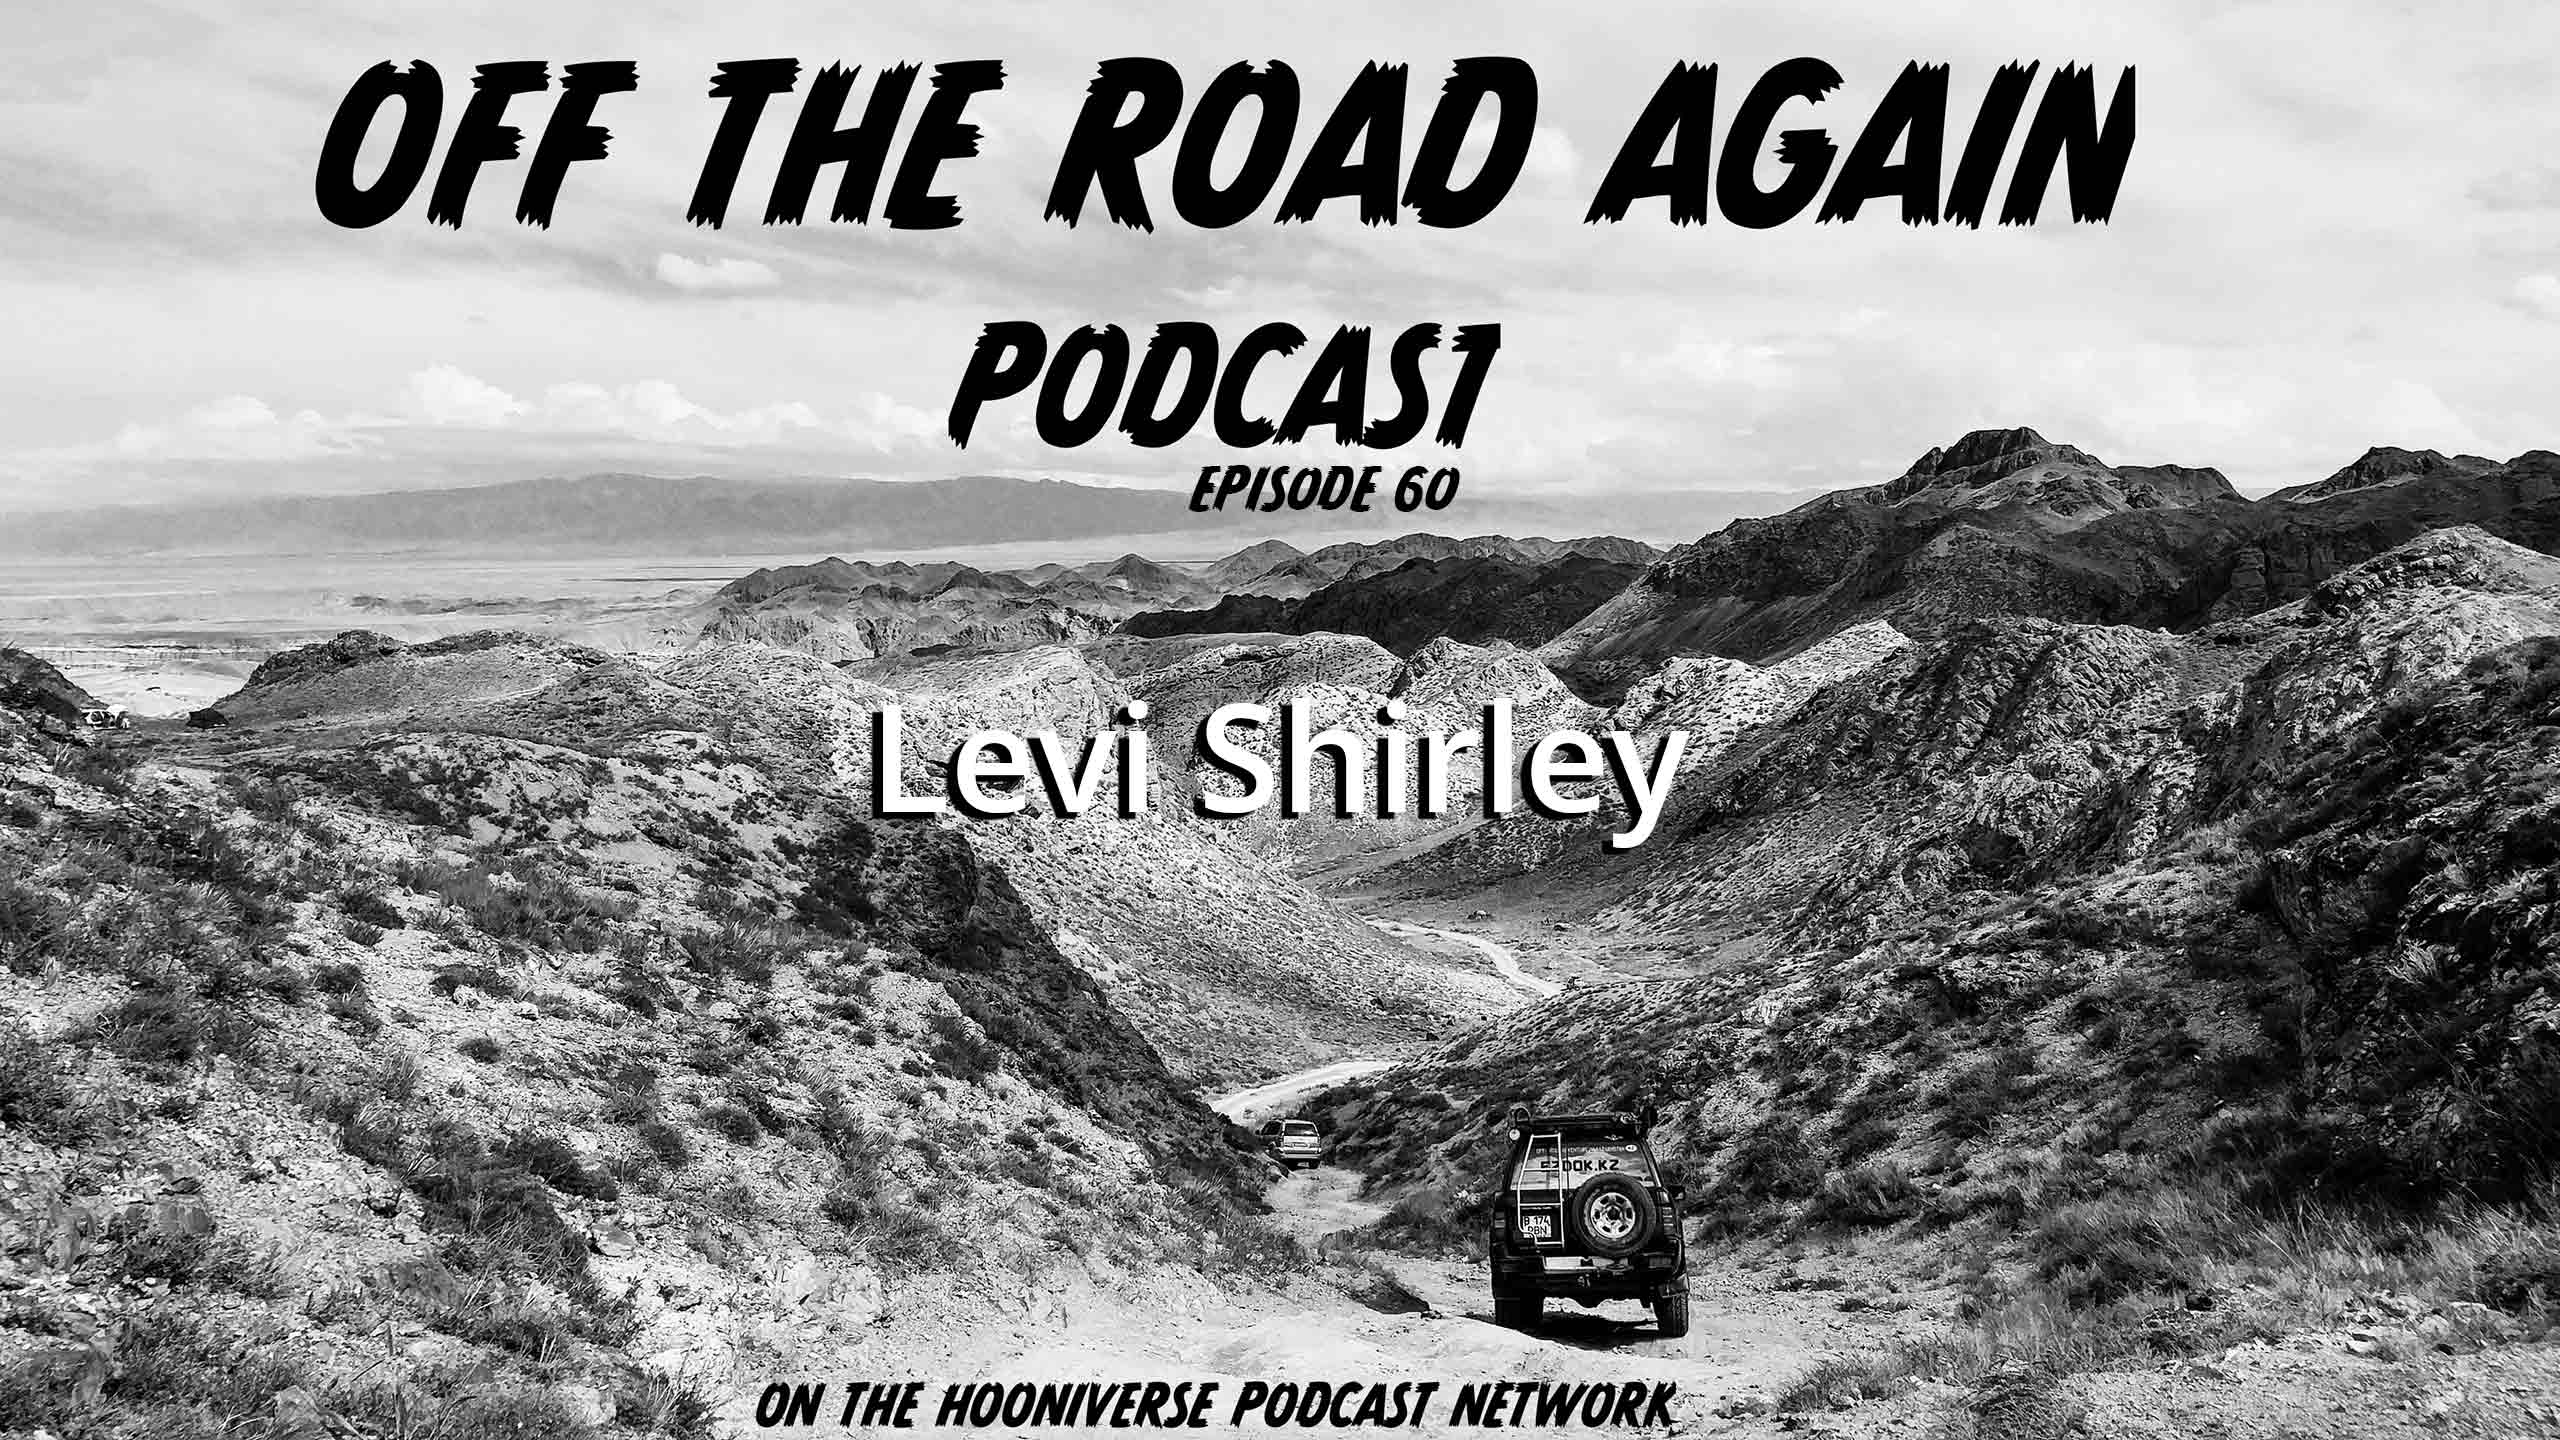 Levi-Shirley-Ultra4-Off-The-Road-Again-Podcast-Episode-60